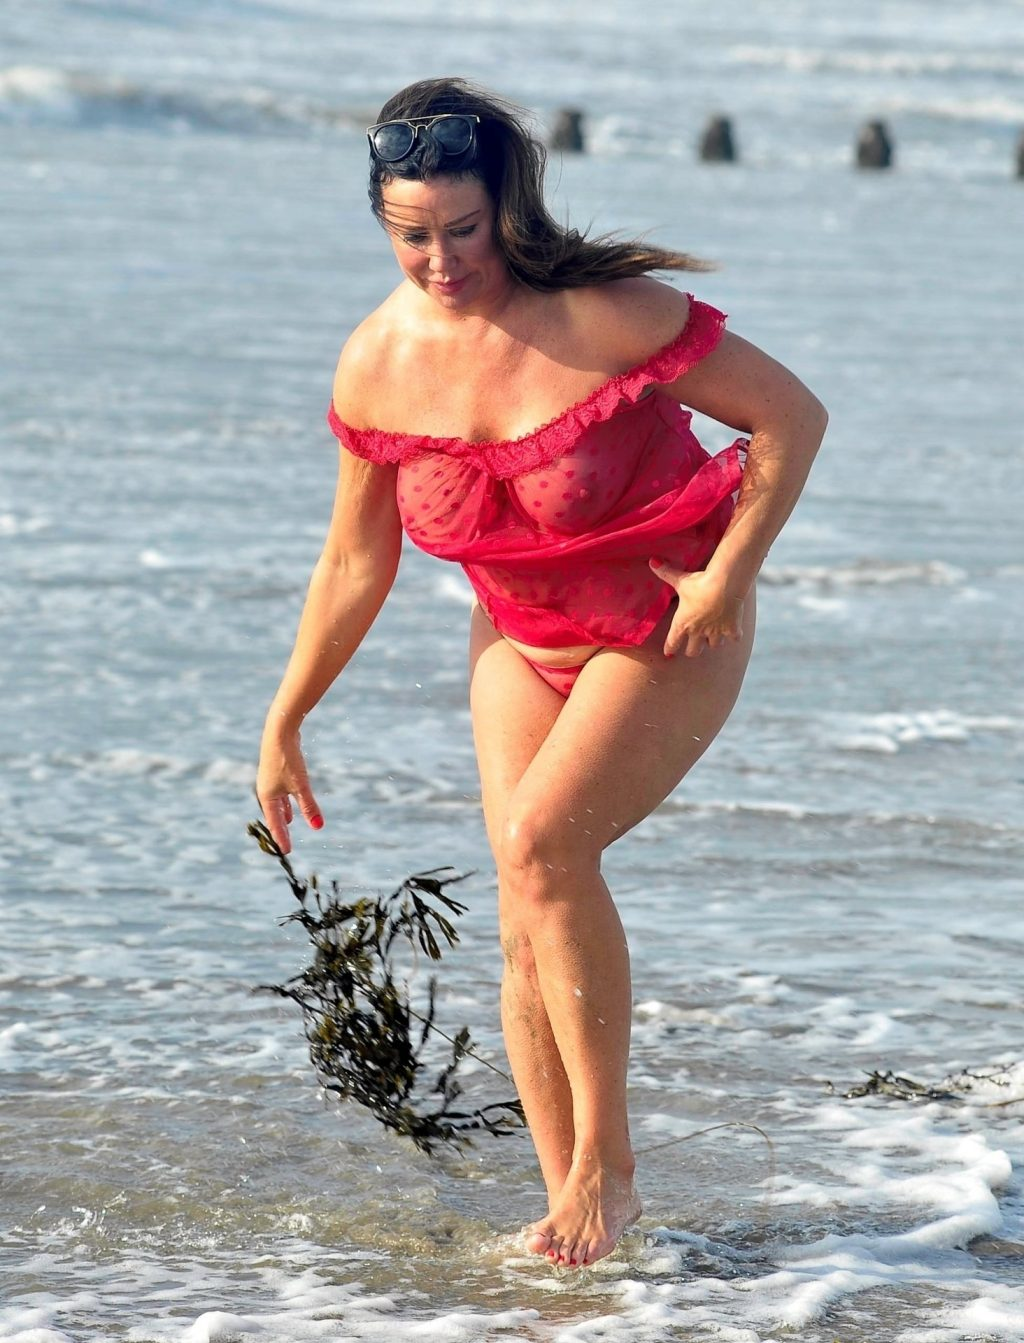 Lisa Appleton See Through & Topless (11 Photos)